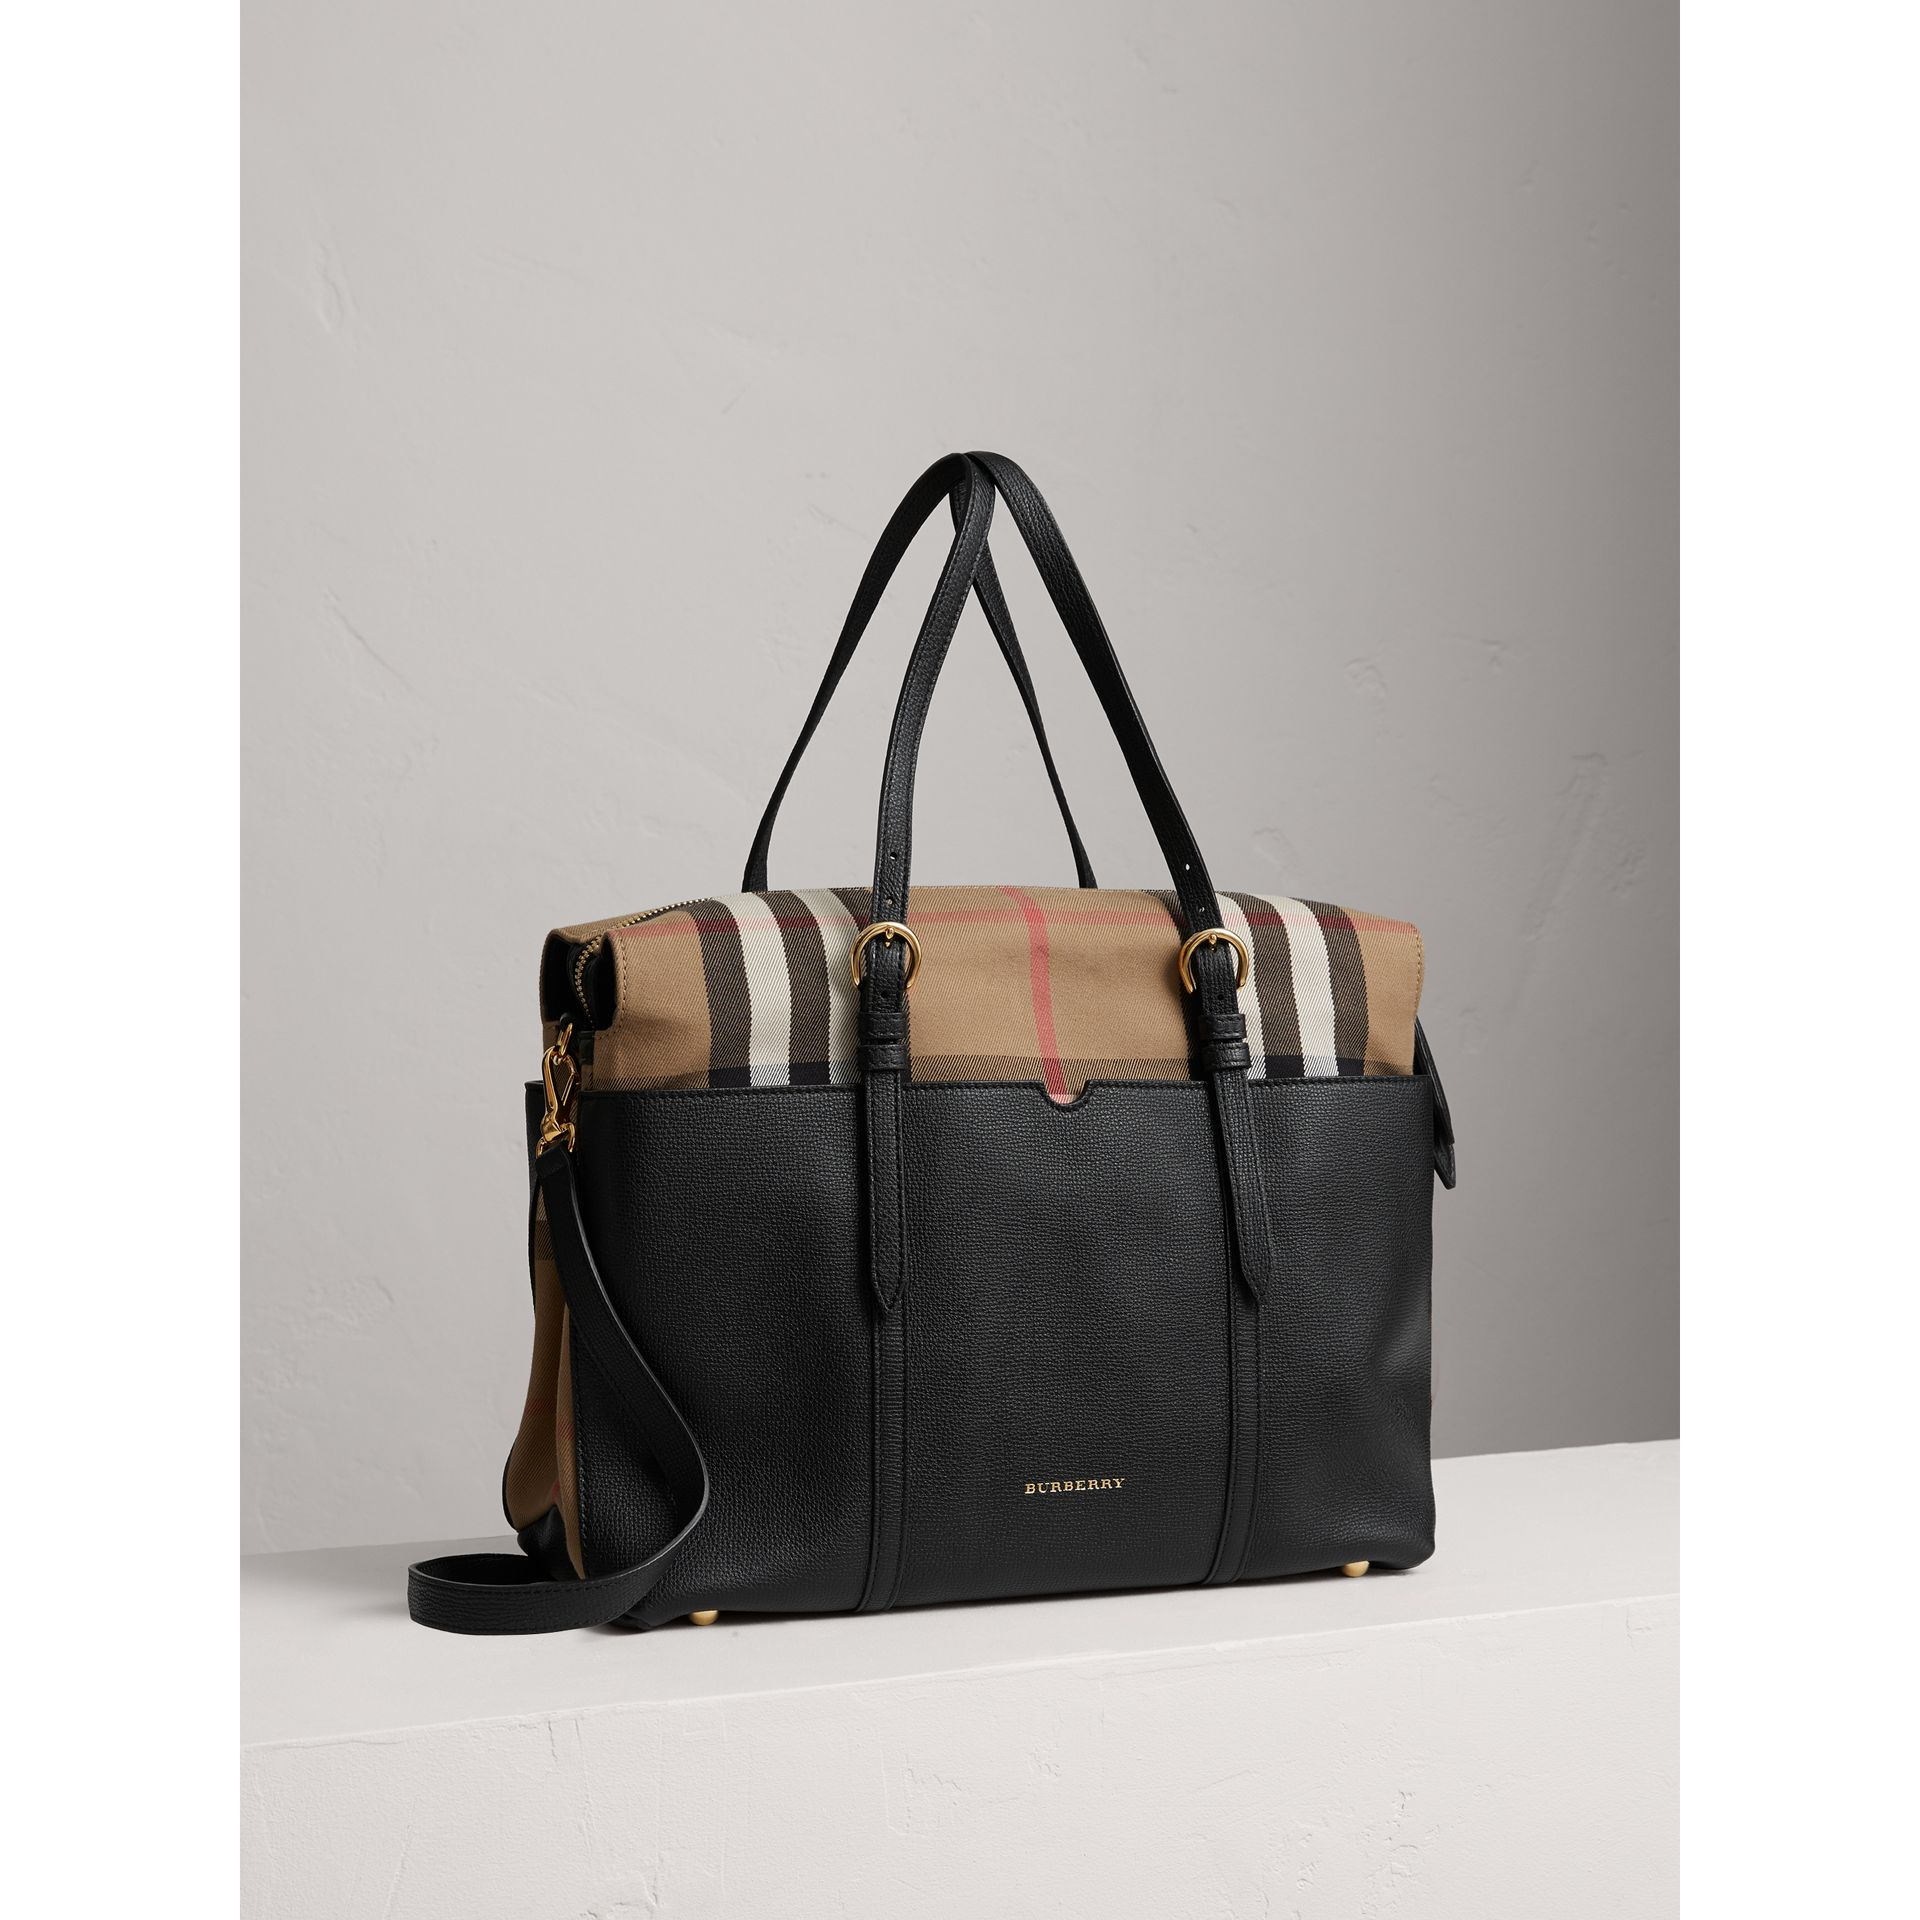 House Check and Leather Baby Changing Bag in Black | Burberry - gallery image 6